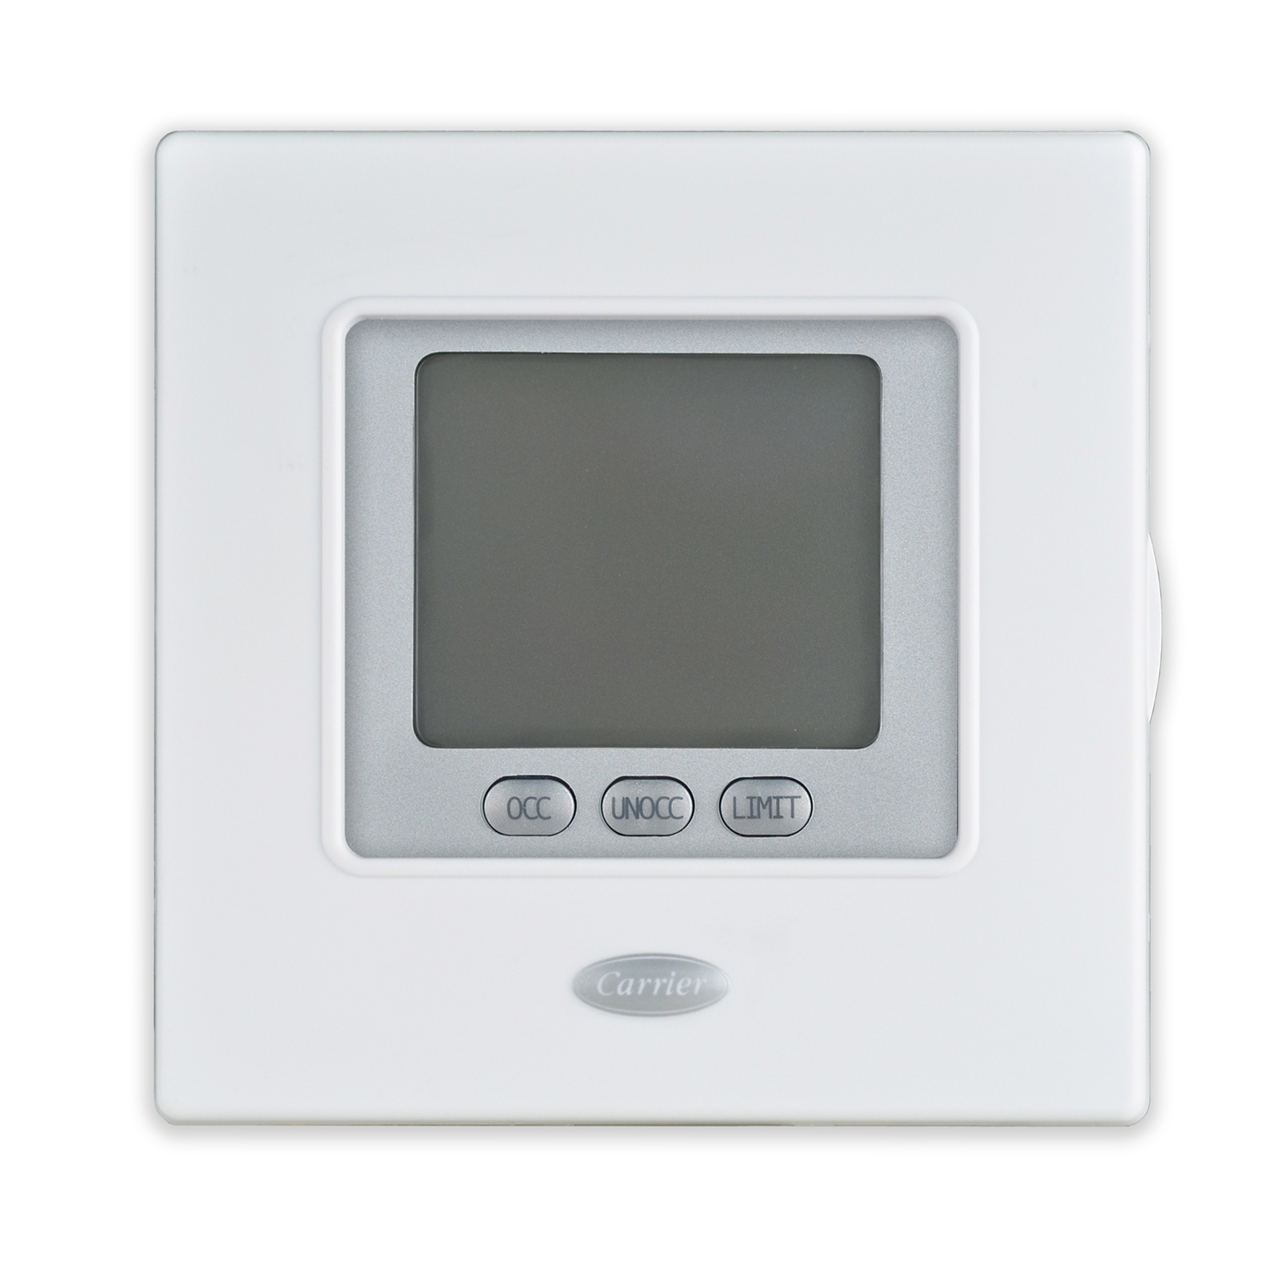 carrier-33CSCPACHP-FC-commercial-non-communicating-programmable-fan-coil-thermostat